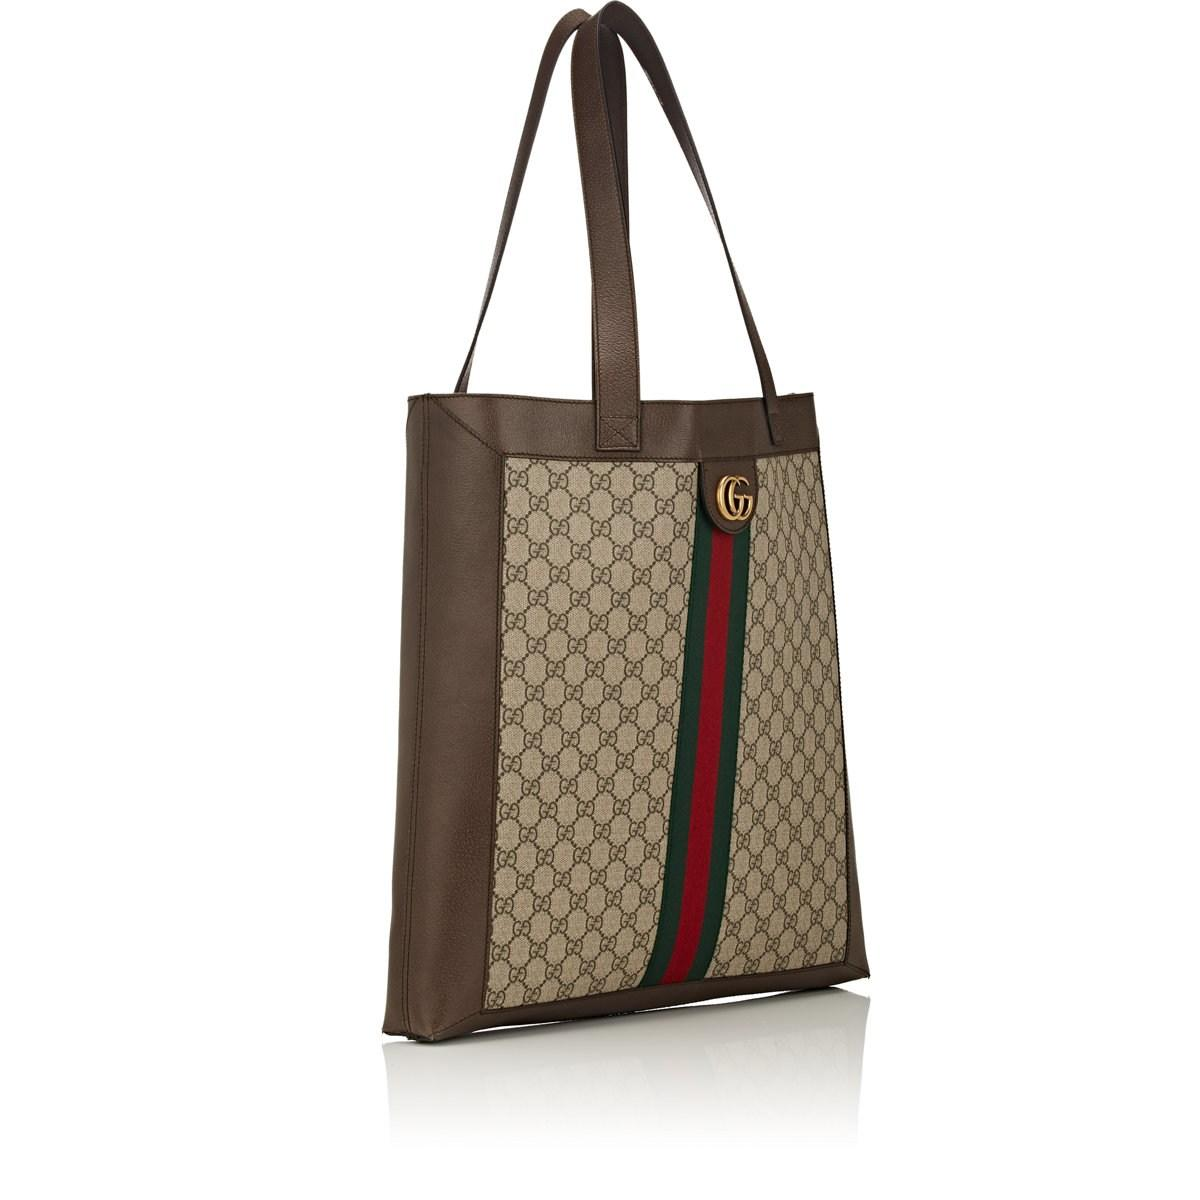 d372186d42 Gucci GG Supreme Canvas Tote Bag in Natural for Men - Lyst